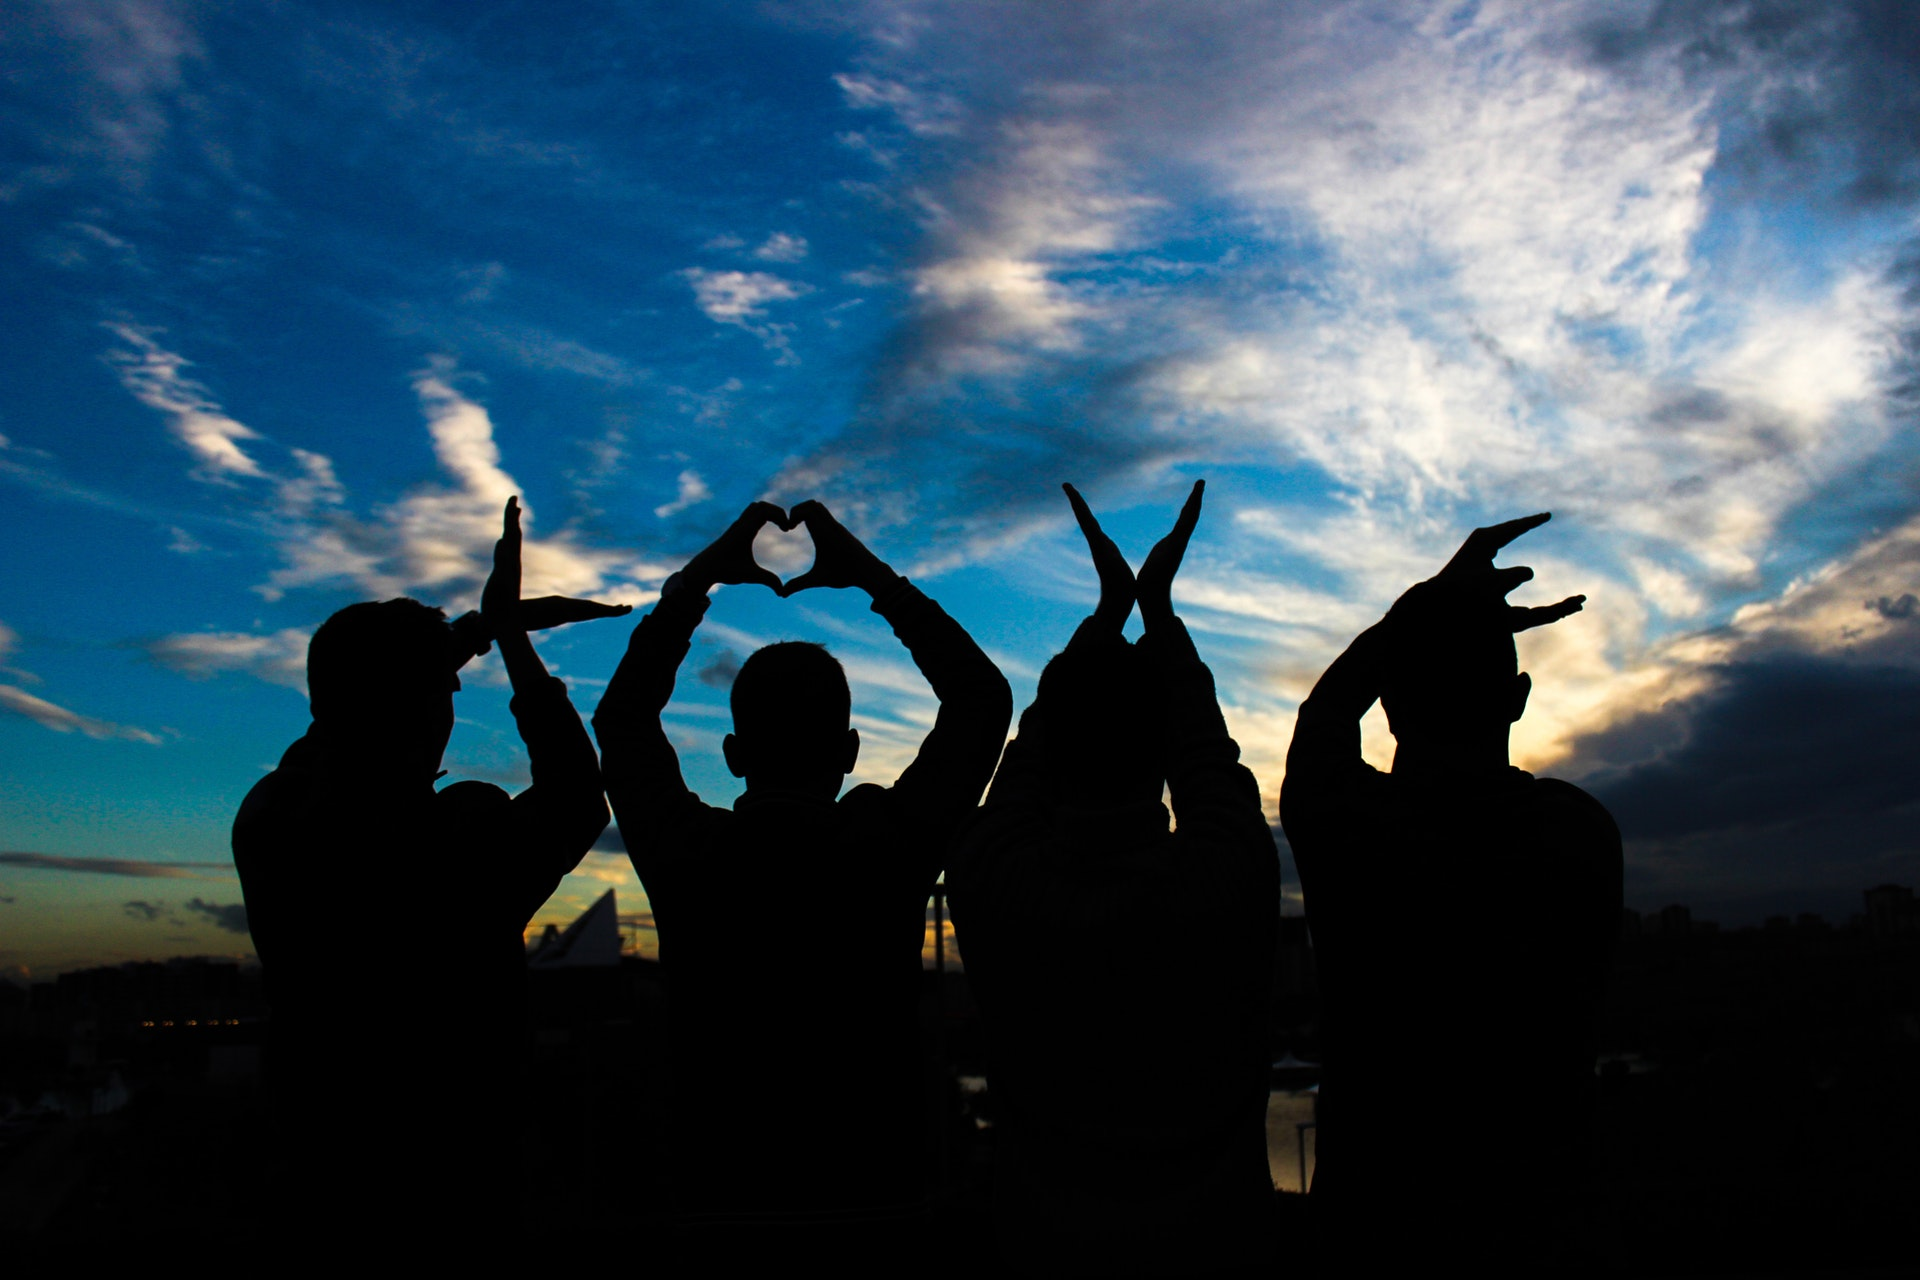 love-people-silhouettes-letters-13918